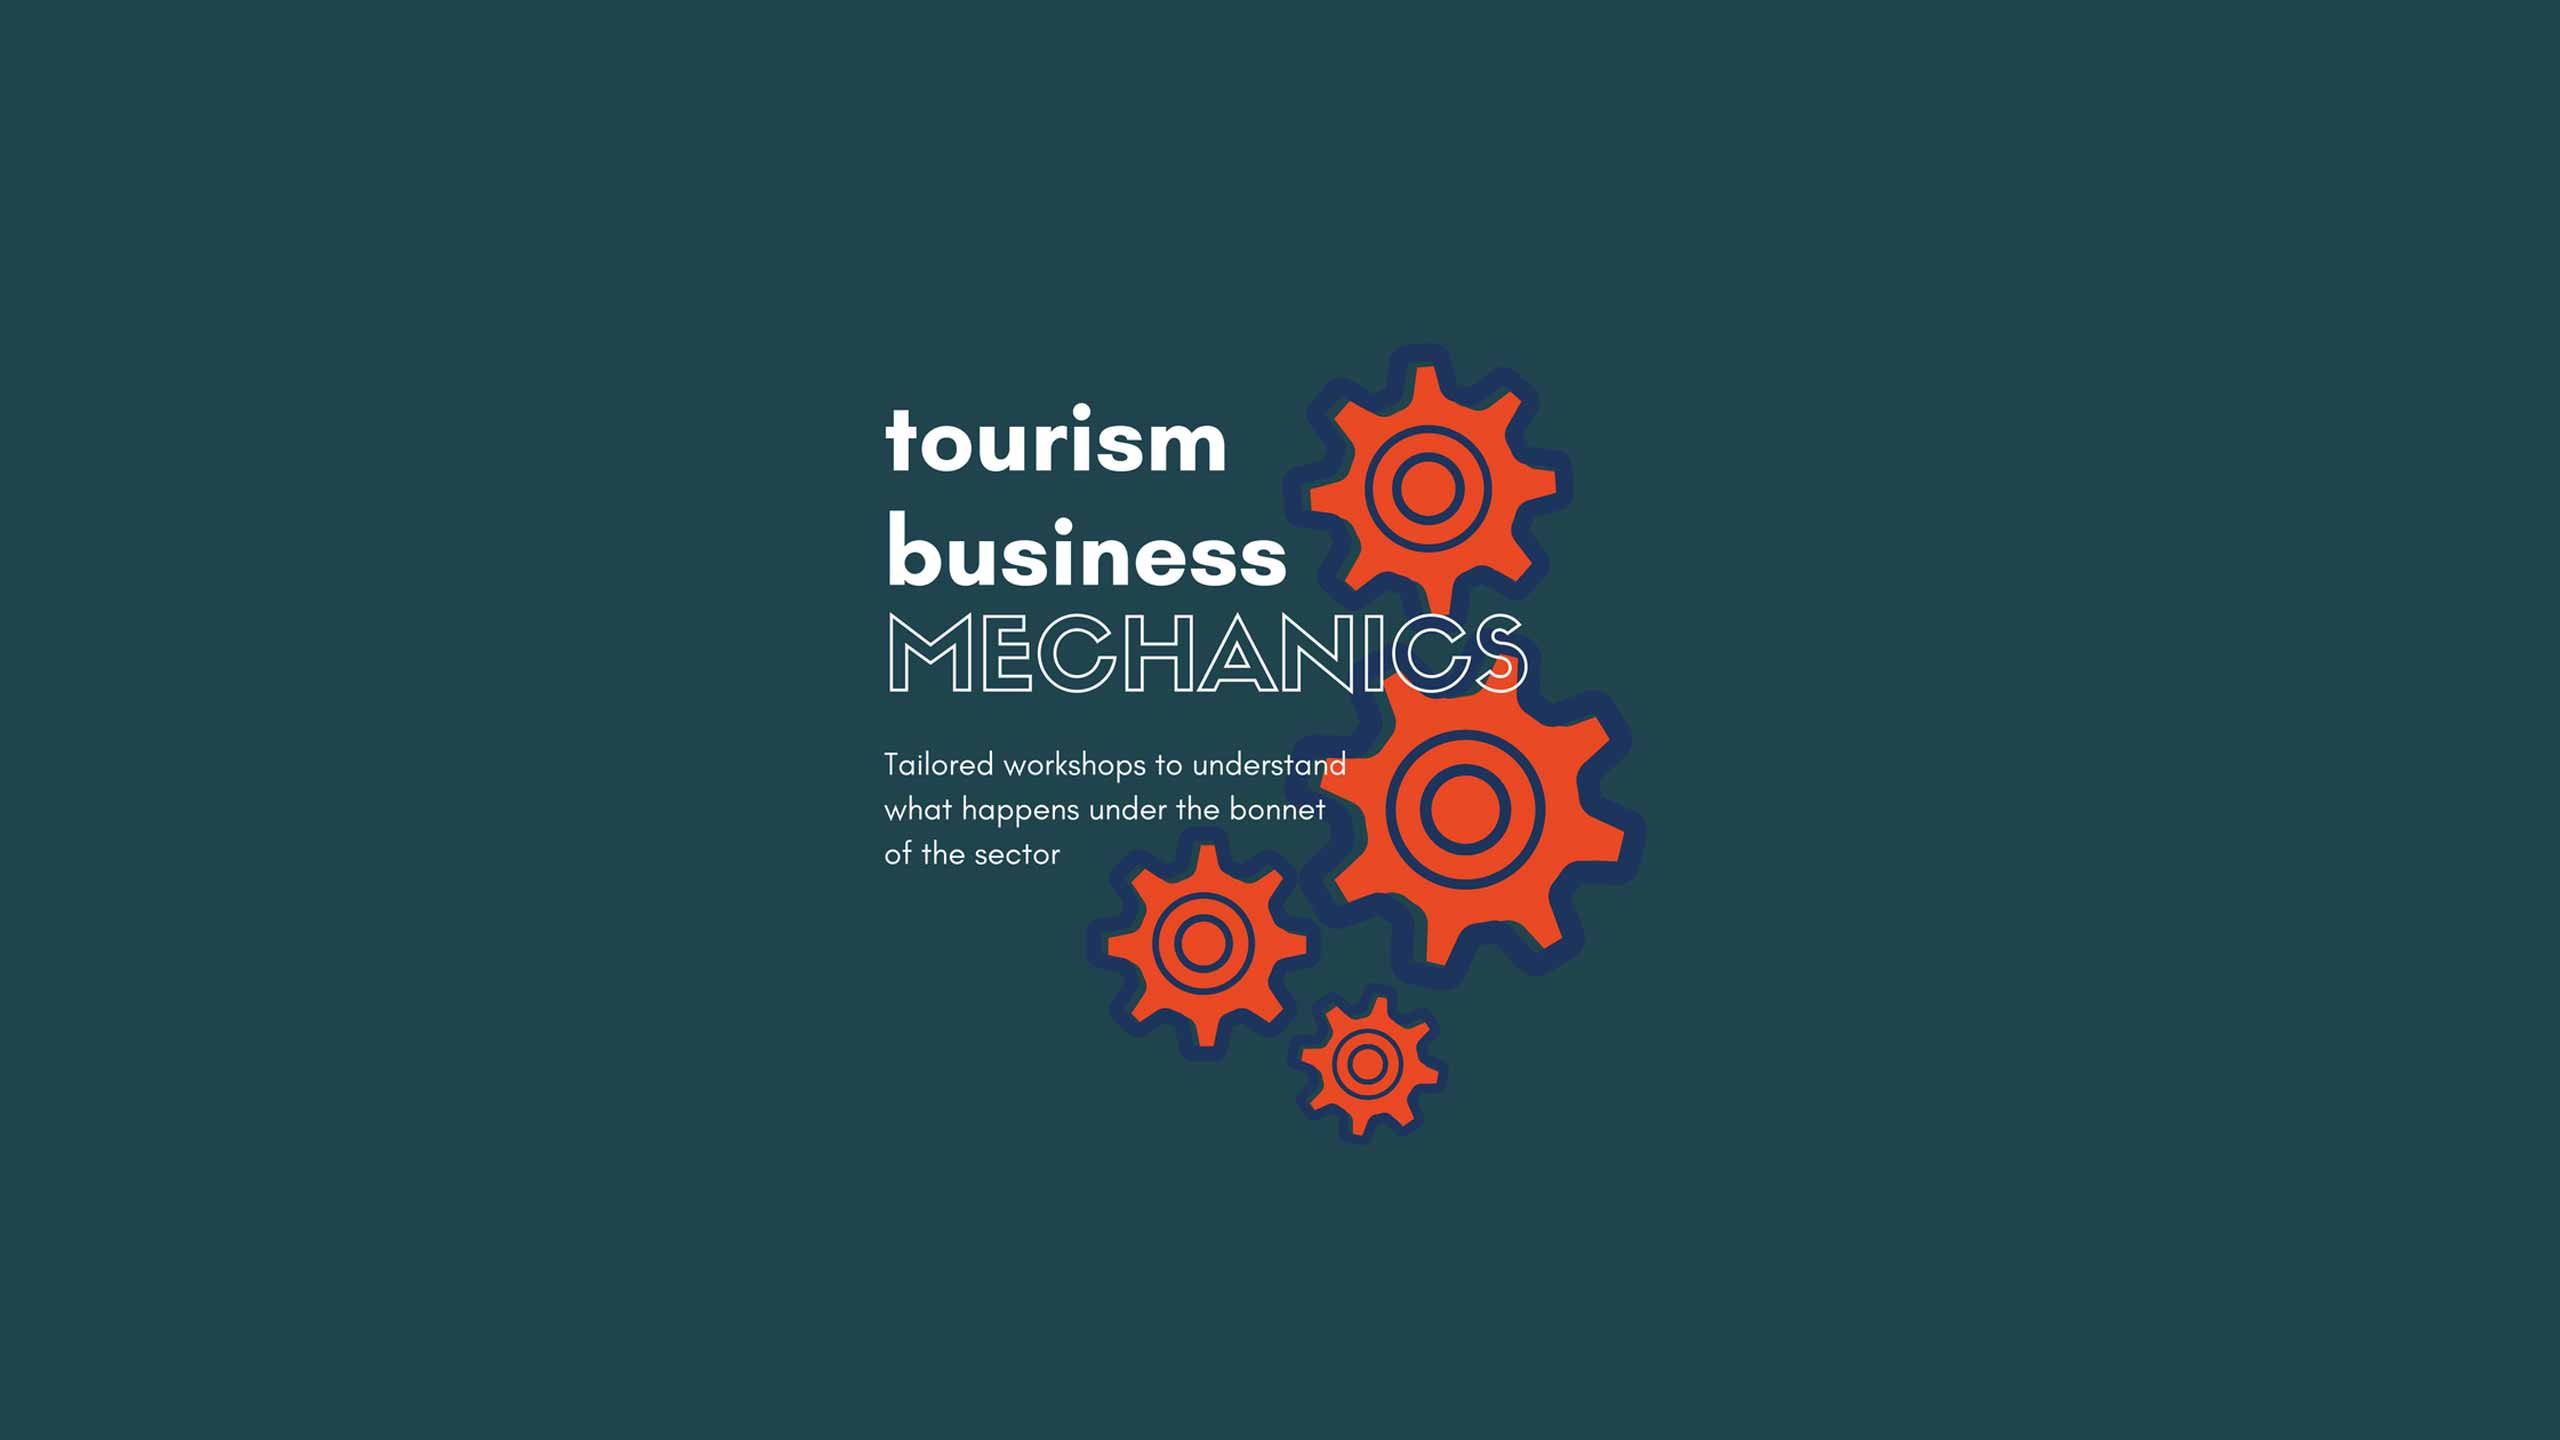 tourism-mechanics